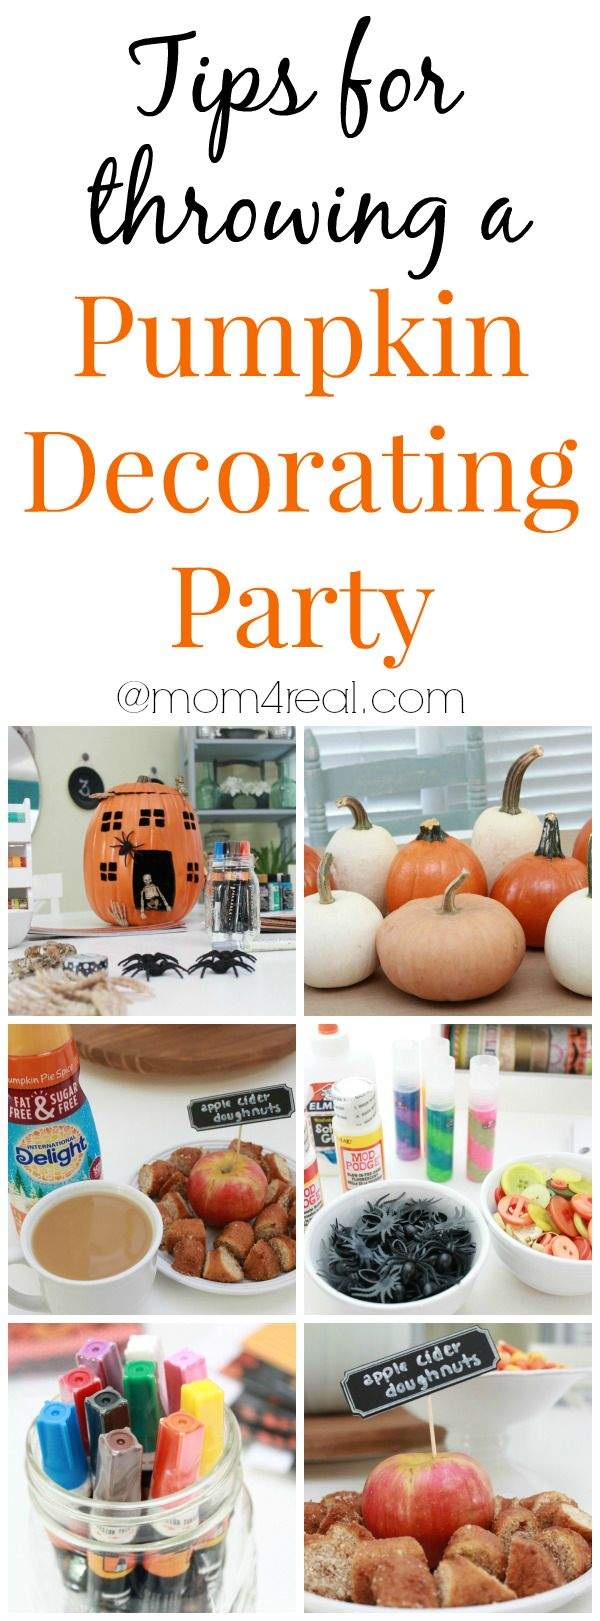 1000+ images about Halloween party ideas on Pinterest | Church ...